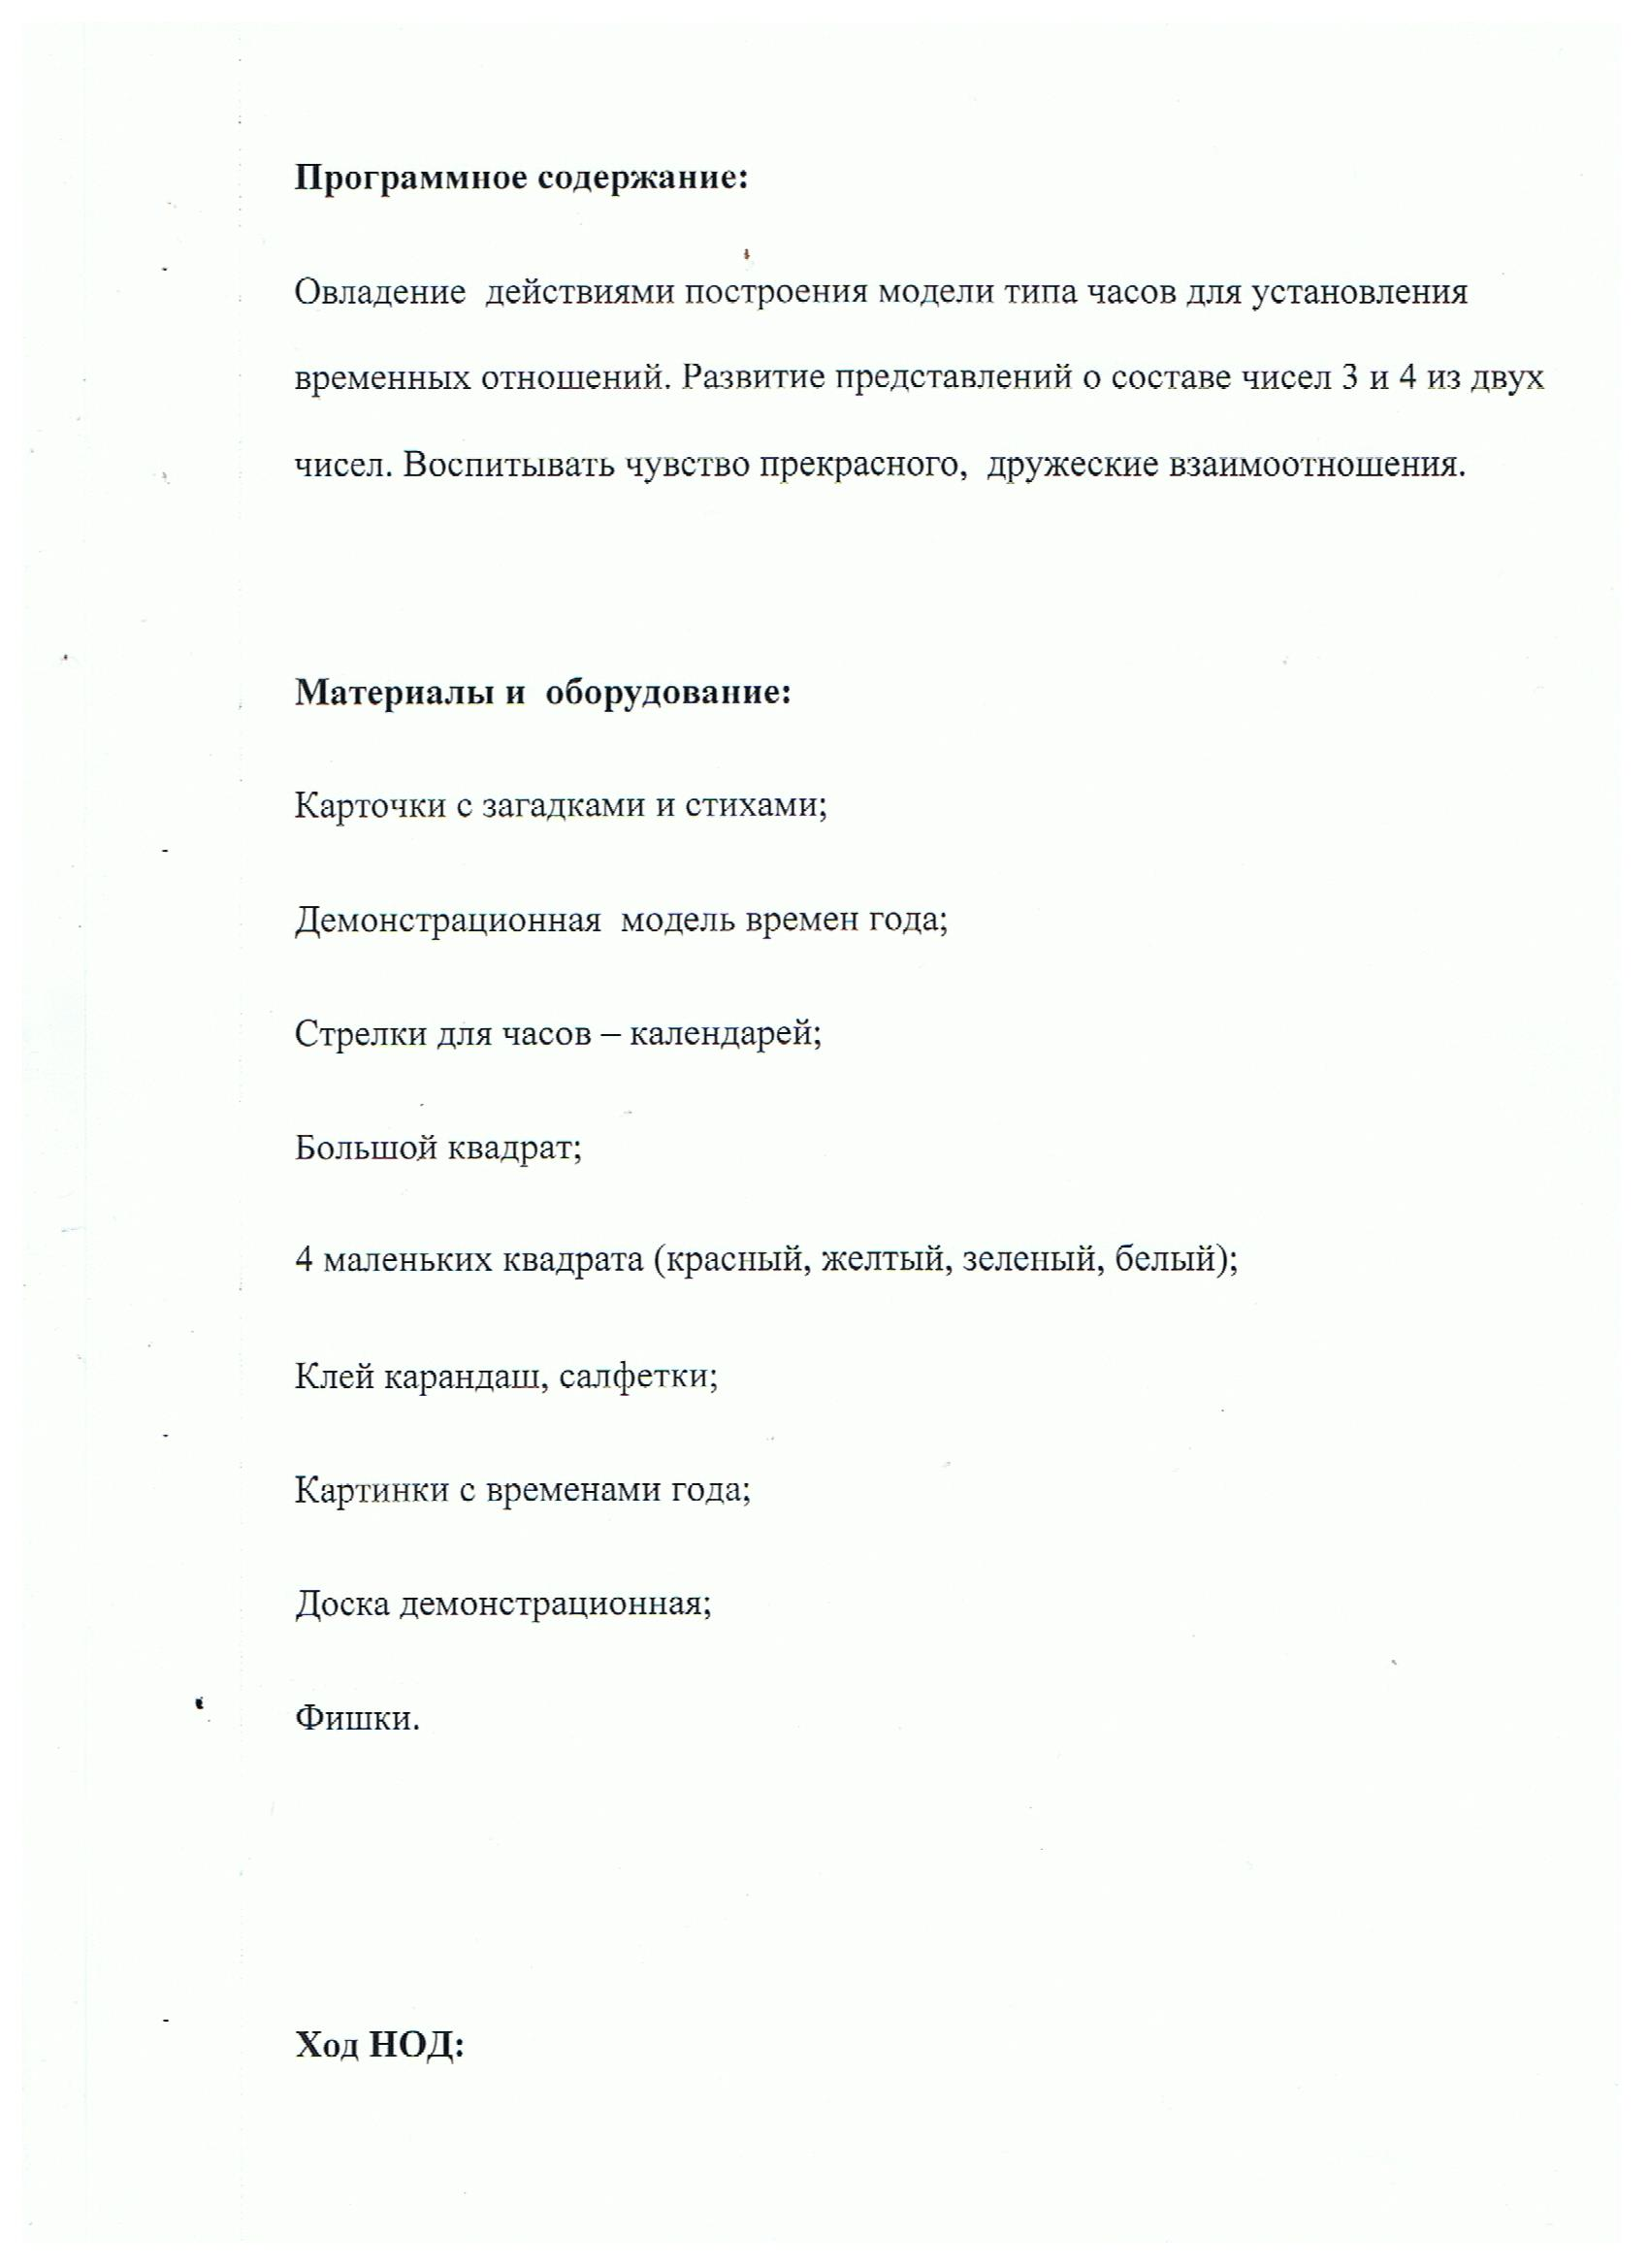 C:\Users\user\Documents\Scanned Documents\бабаева 1\Рисунок (2).jpg